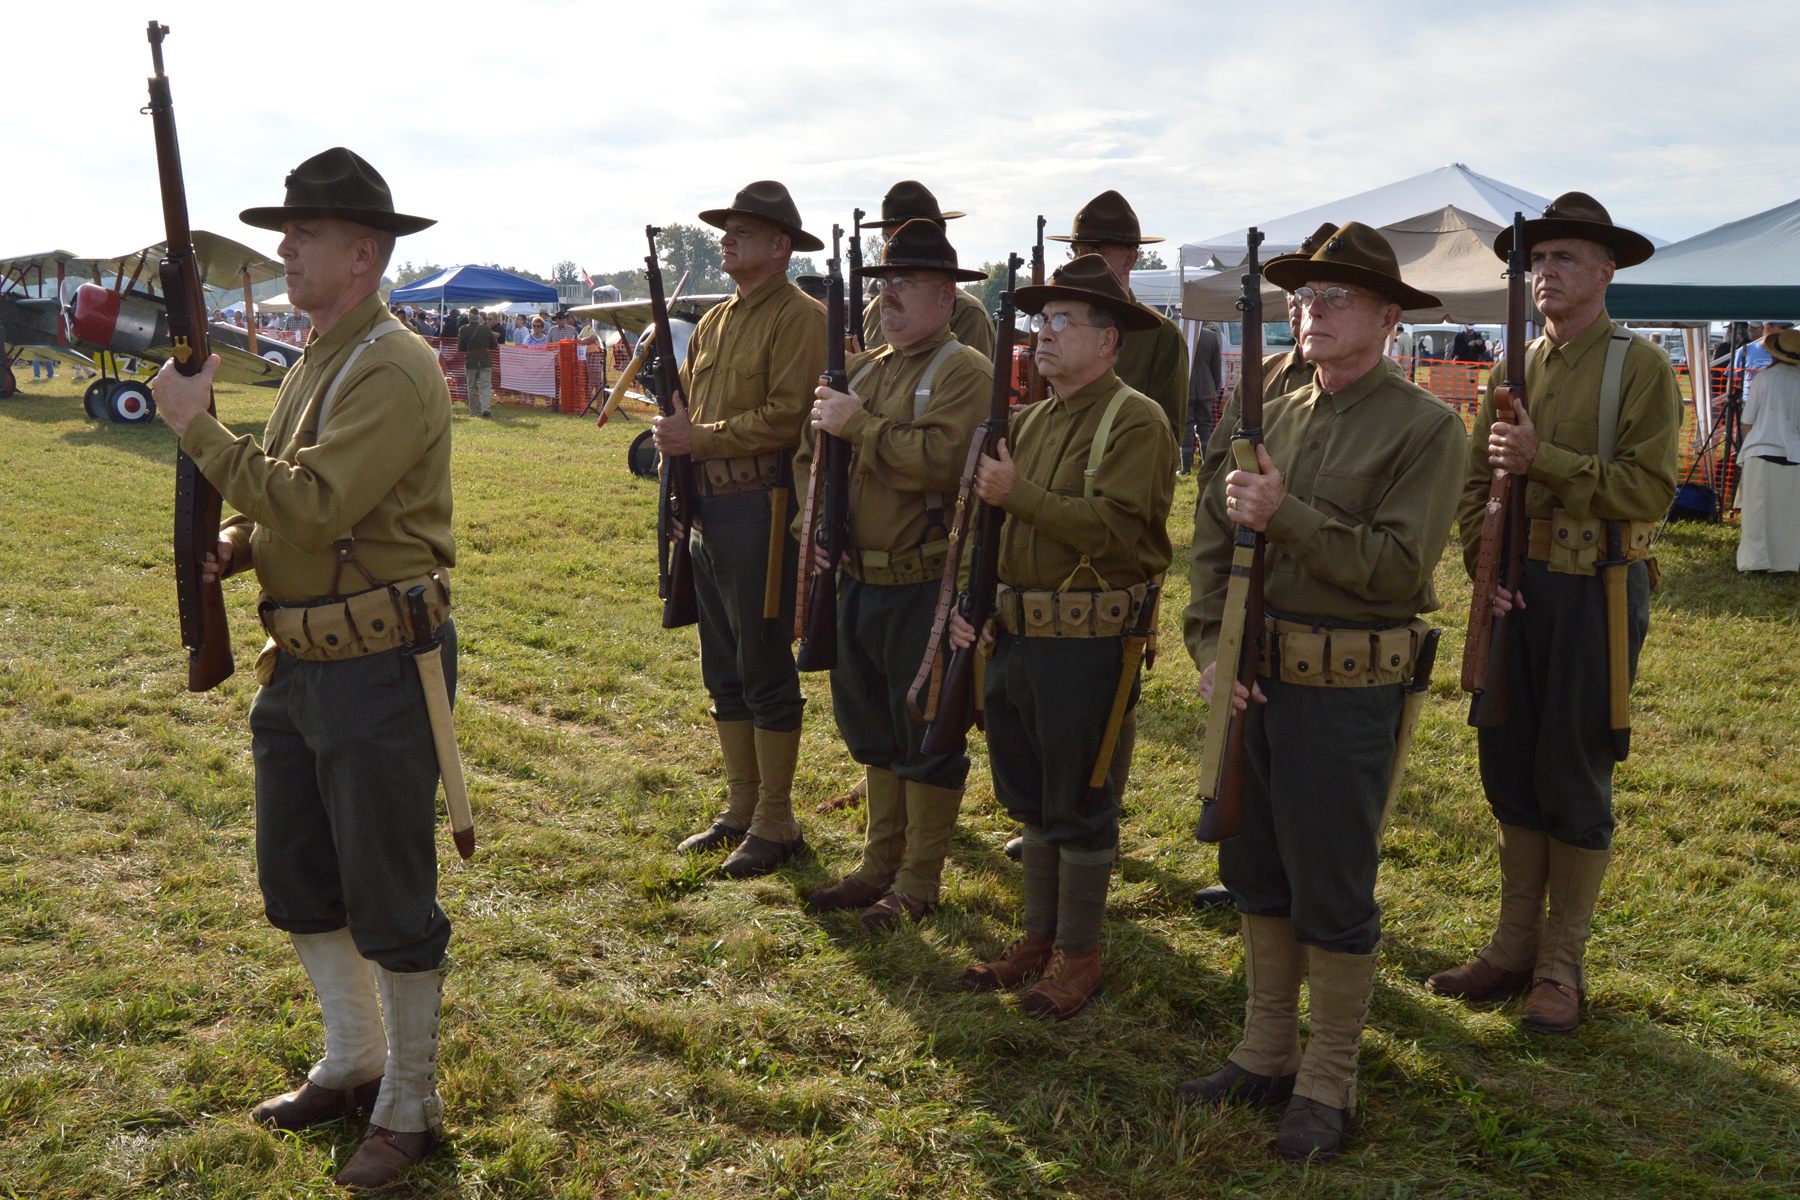 Re-enactors will perform skits in a war encampment during the WWI Dawn Patrol Rendezvous, Oct. 1-2, 2016, at the National Museum of the U.S. Air Force. (U.S. Air Force photo)